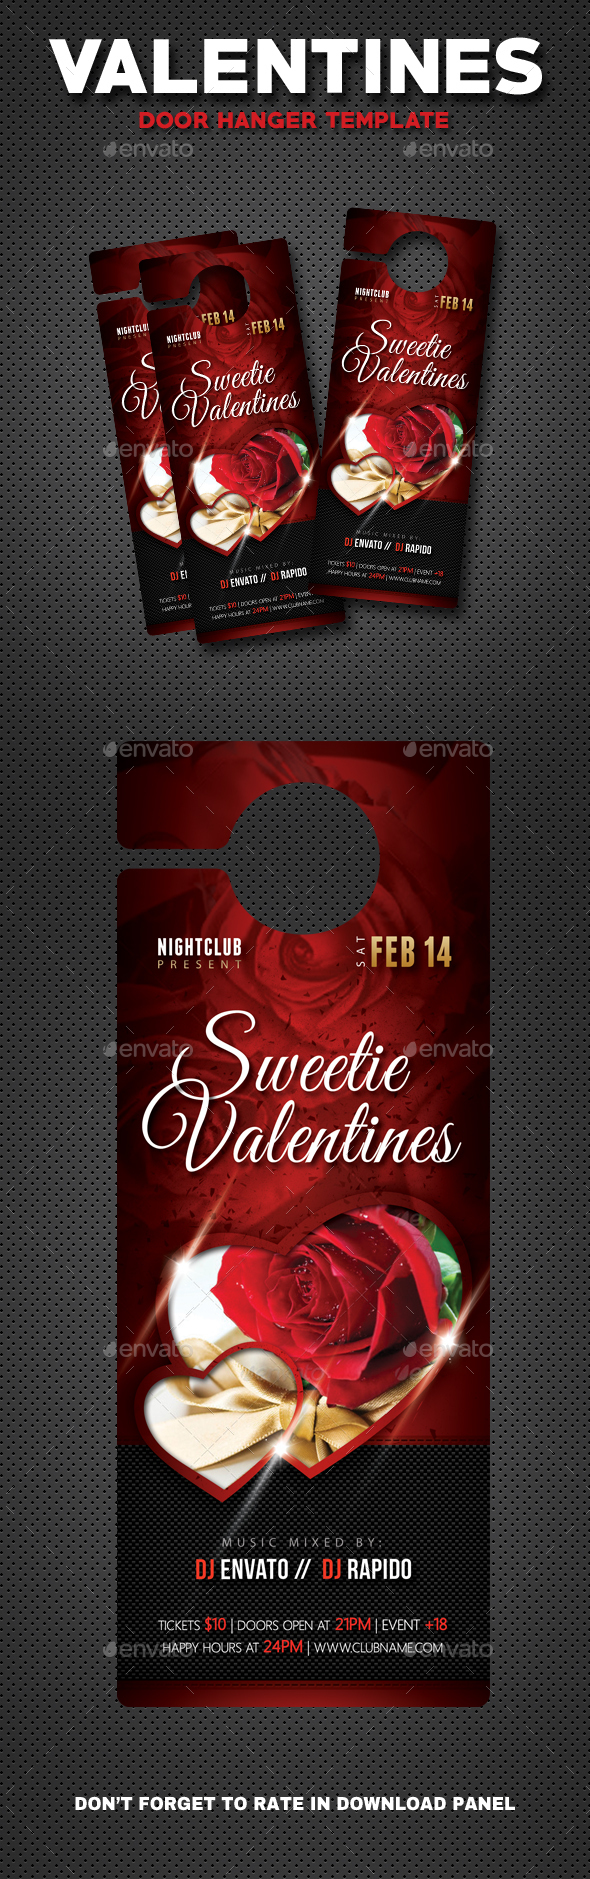 Valentines Day Club Party Door Hanger - Miscellaneous Print Templates